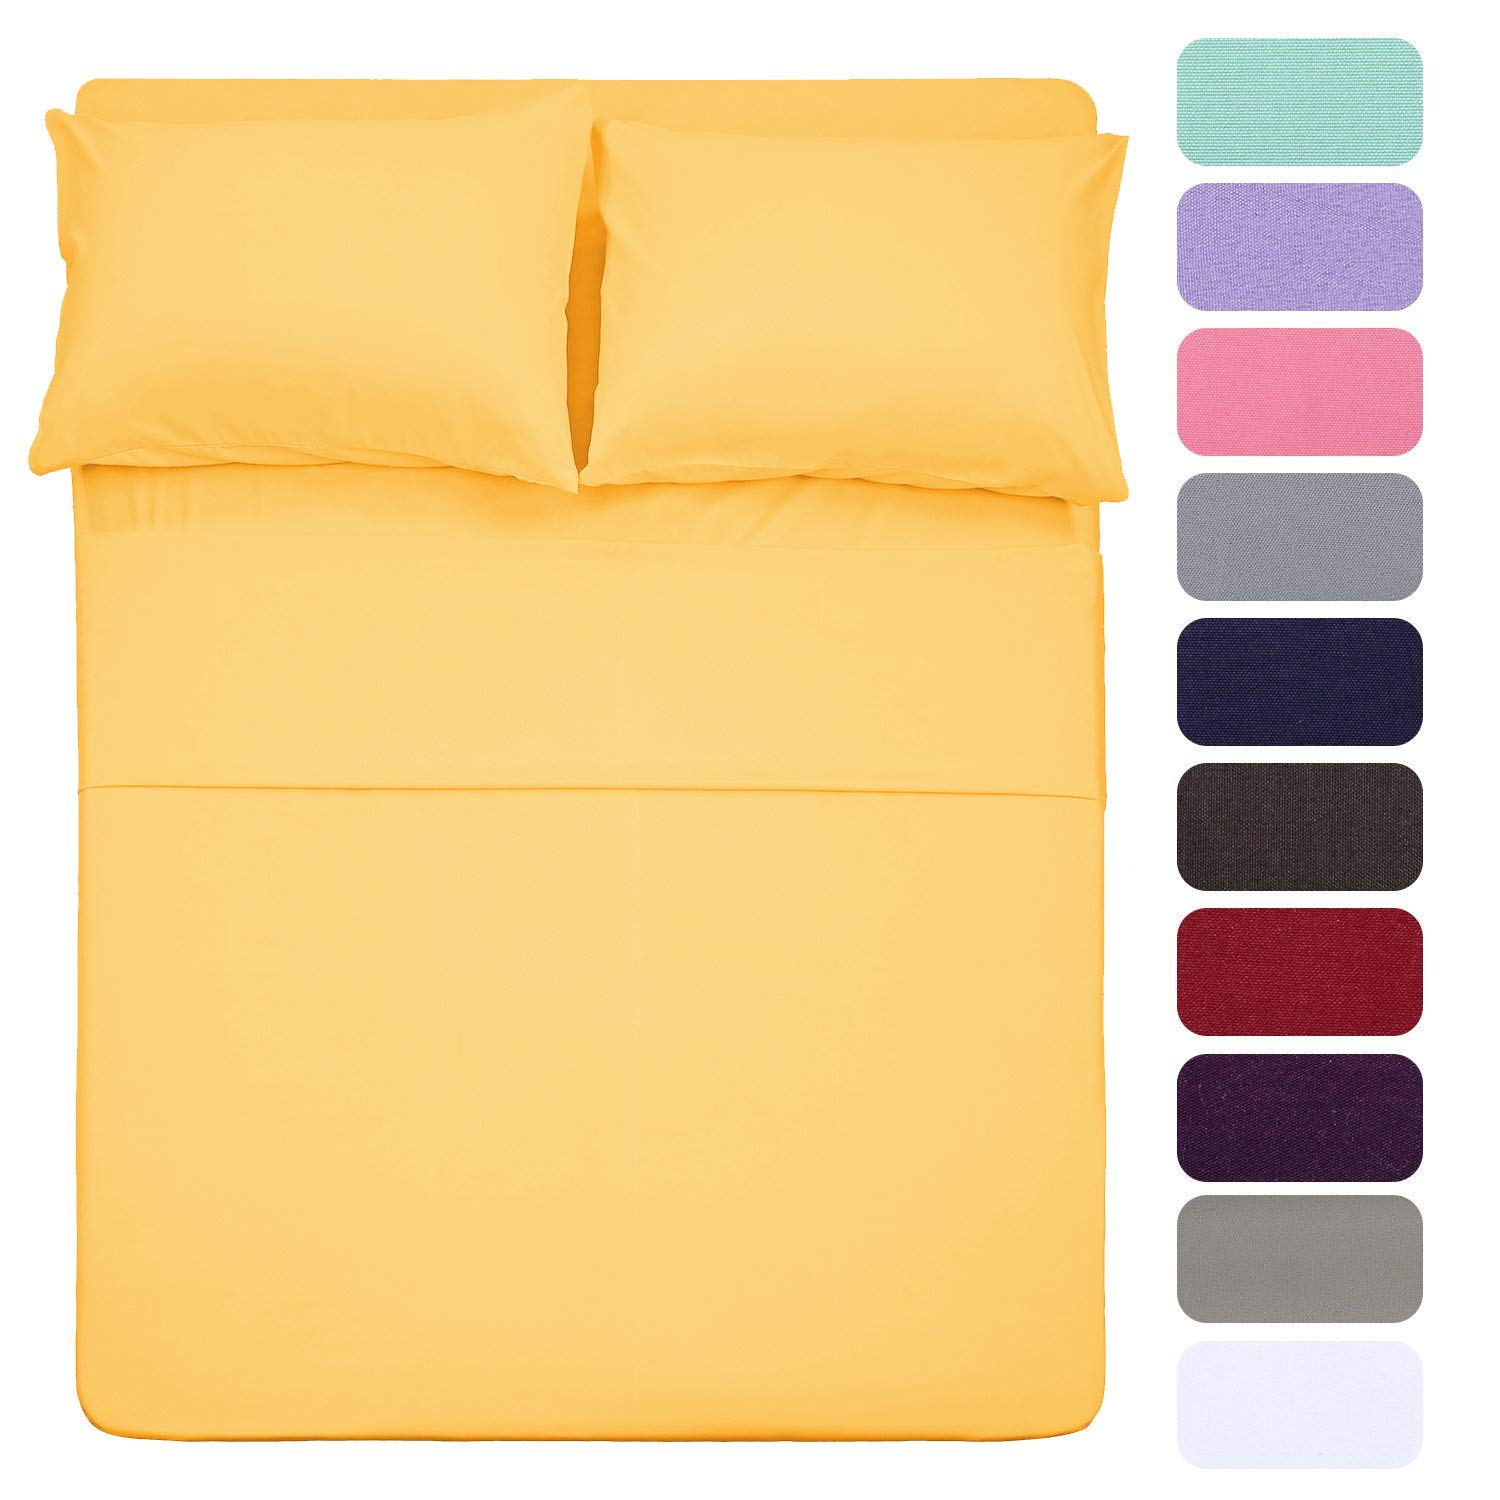 Best Season 4 Piece Bed Sheet Set (Full,Yellow) 1 Flat Sheet,1 Fitted Sheet and 2 Pillow Cases,100% Brushed Microfiber 1800 Luxury Bedding,Deep Pockets,Extra Soft & Fade Resistant